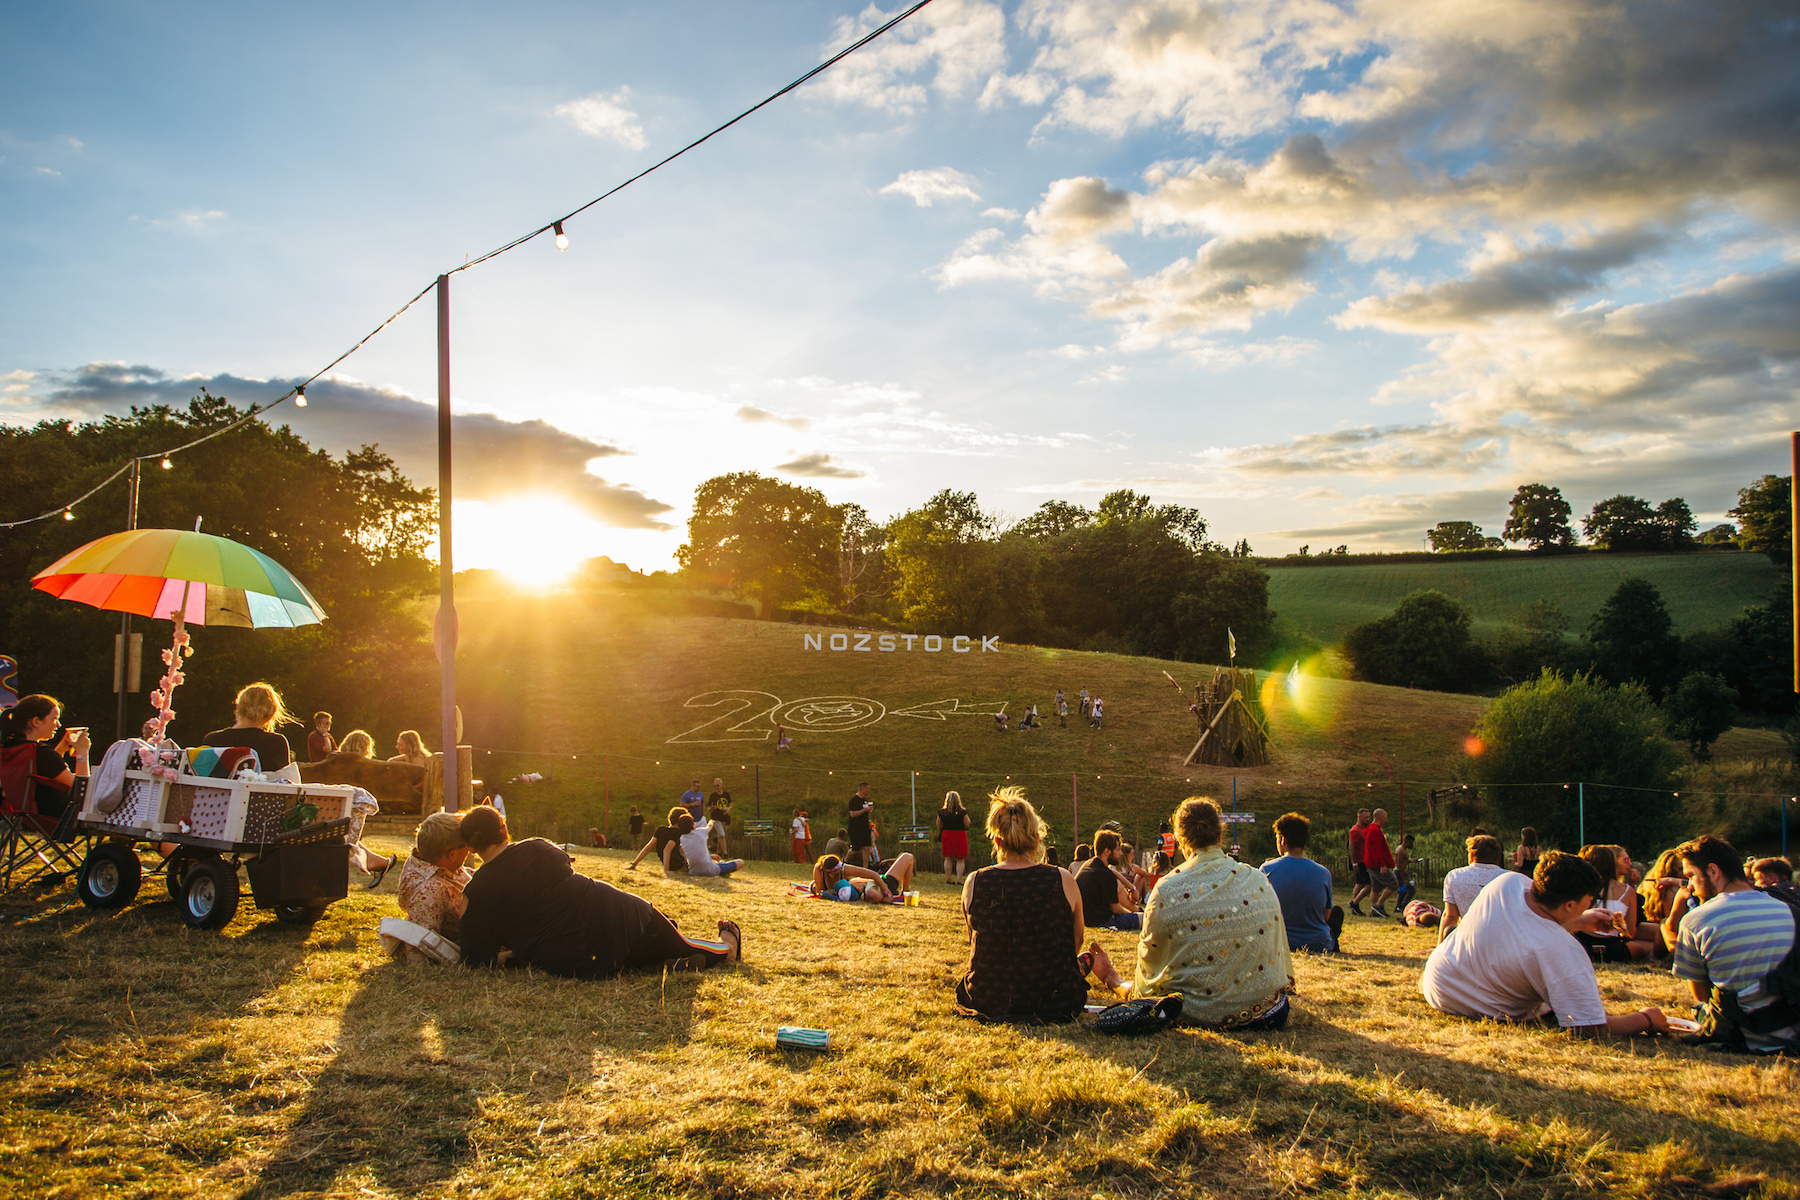 Nozstock 2019 - the family-run festival is back next weekend for its 21st year! Credit@ChloeKnott